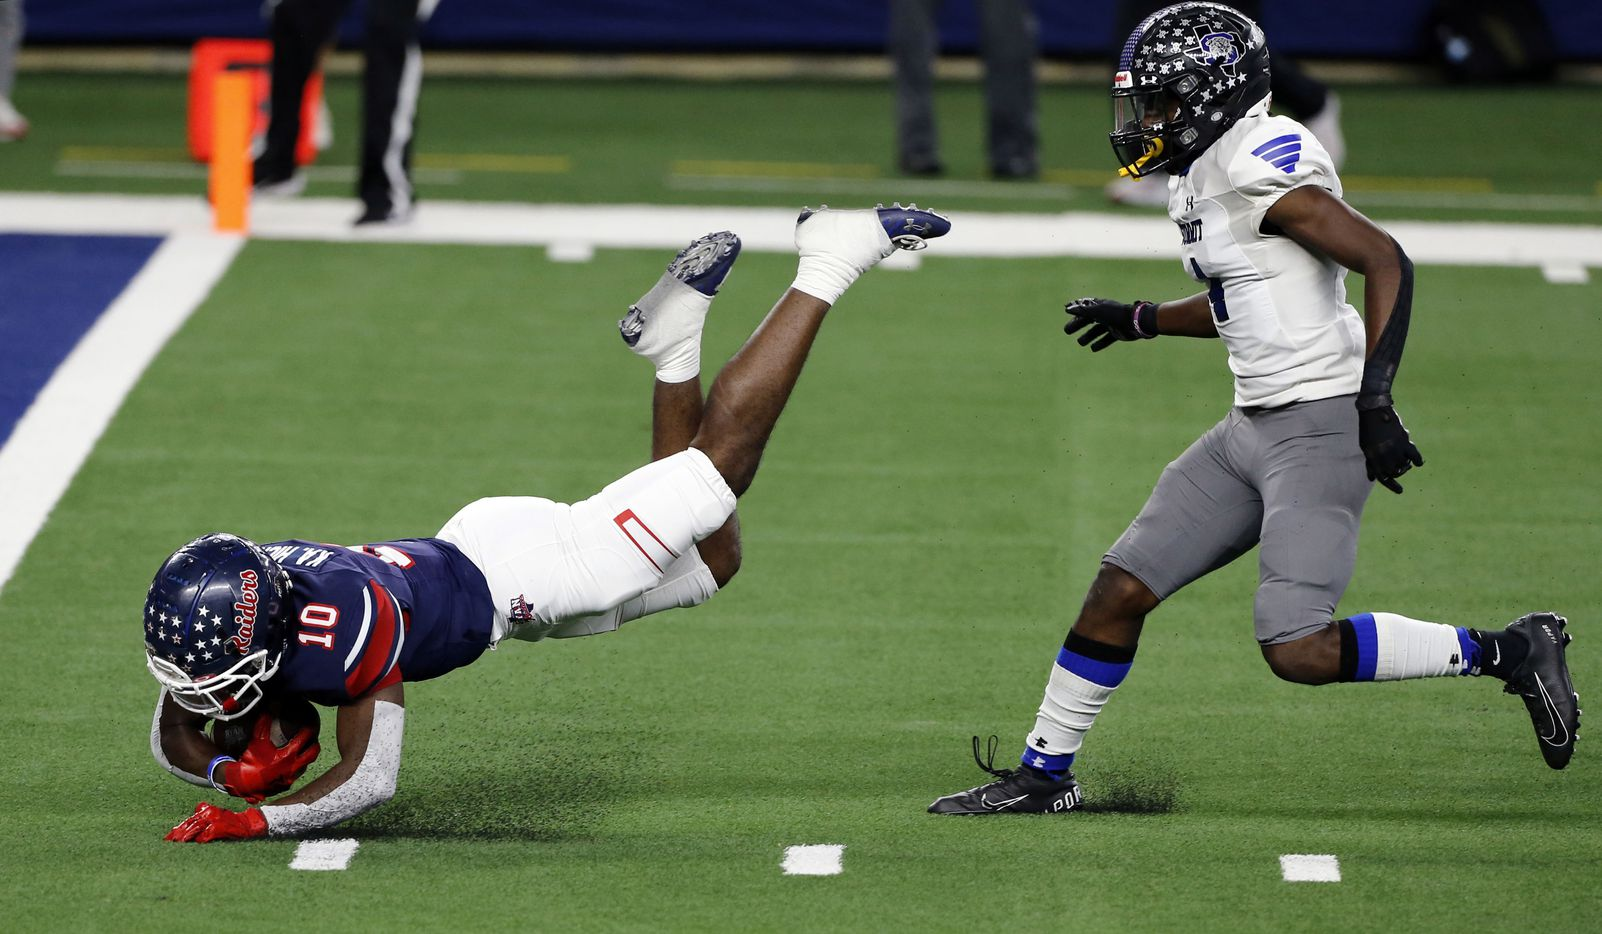 Denton Ryan's Kalib Hicks (10) dives for the end zone, but comes up a yard short, as Mansfield Summit's Jalon Rock (4) trails during the first half of the Class 5A Division I state semifinal football playoff game at AT&T Stadium in Arlington on Friday, January 8, 2021. (John F. Rhodes / Special Contributor)